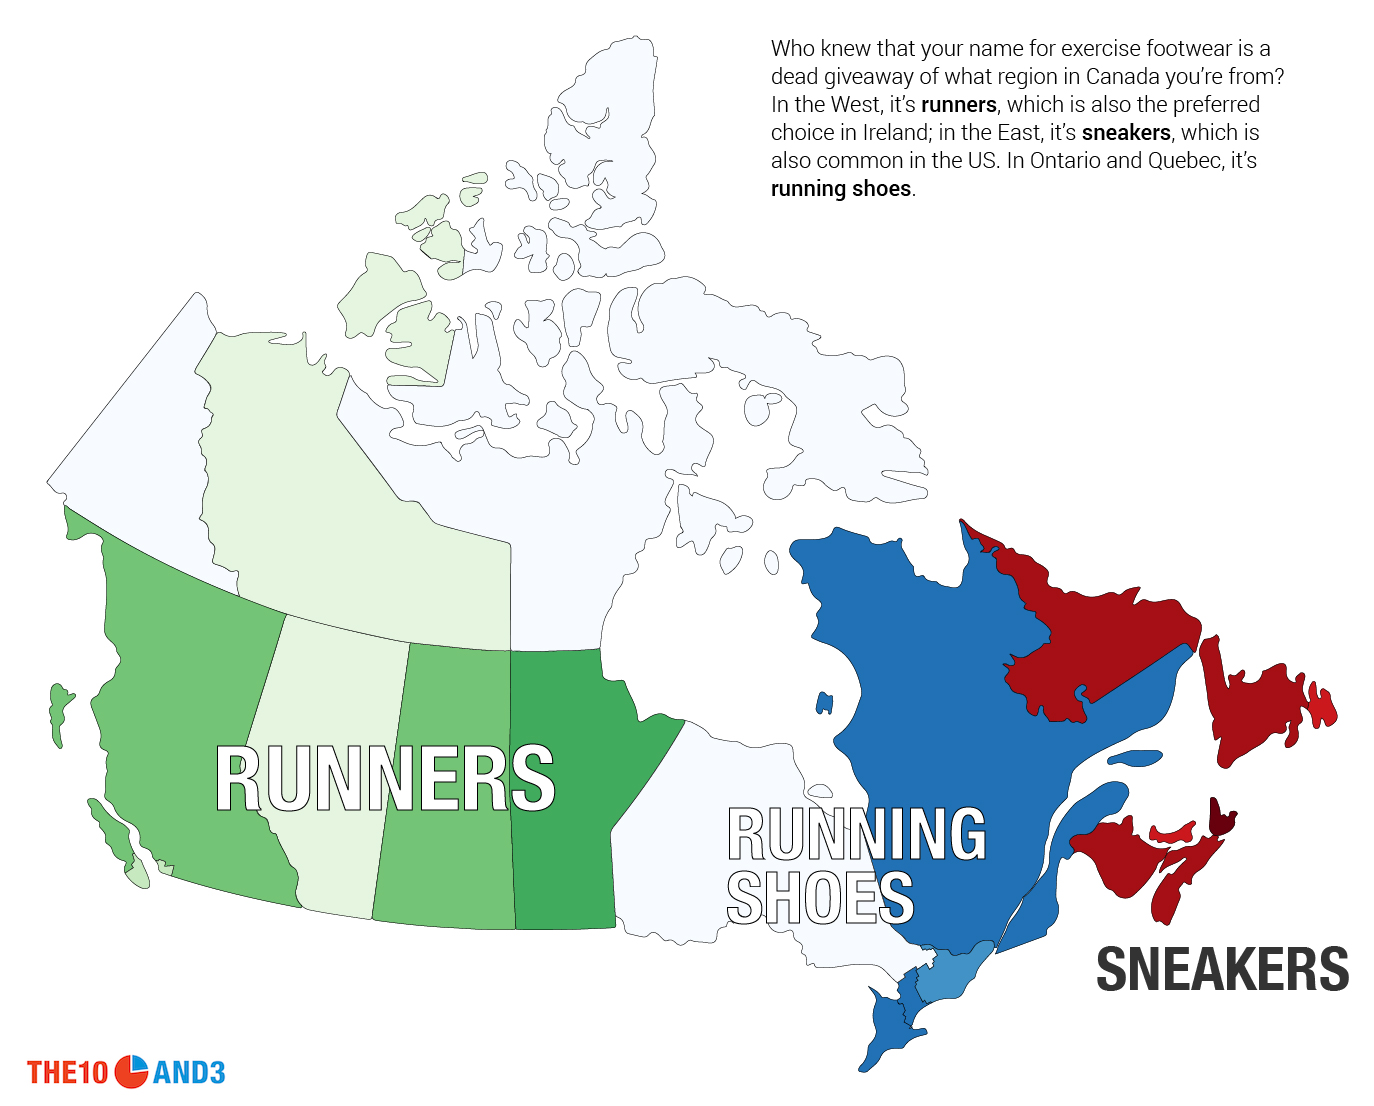 runners vs running shoes vs sneakers